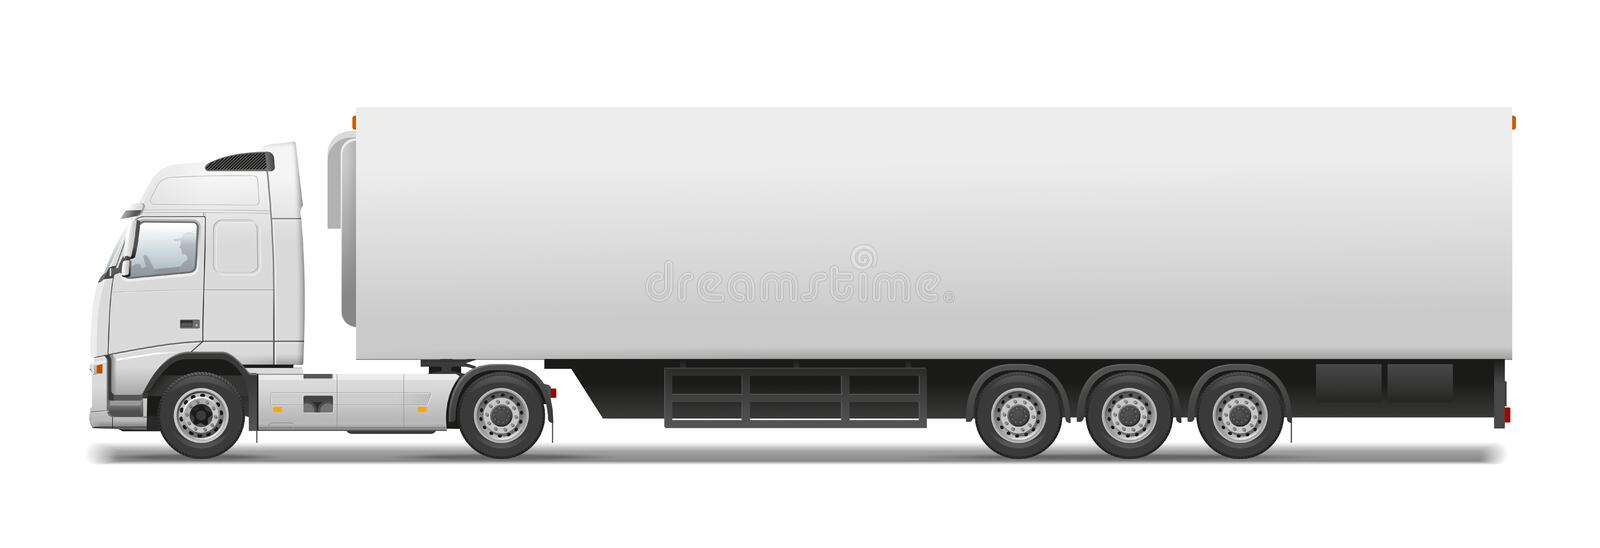 Commercial transport. Volvo truck. Vector illustration for best prints. The vector original is ready for download